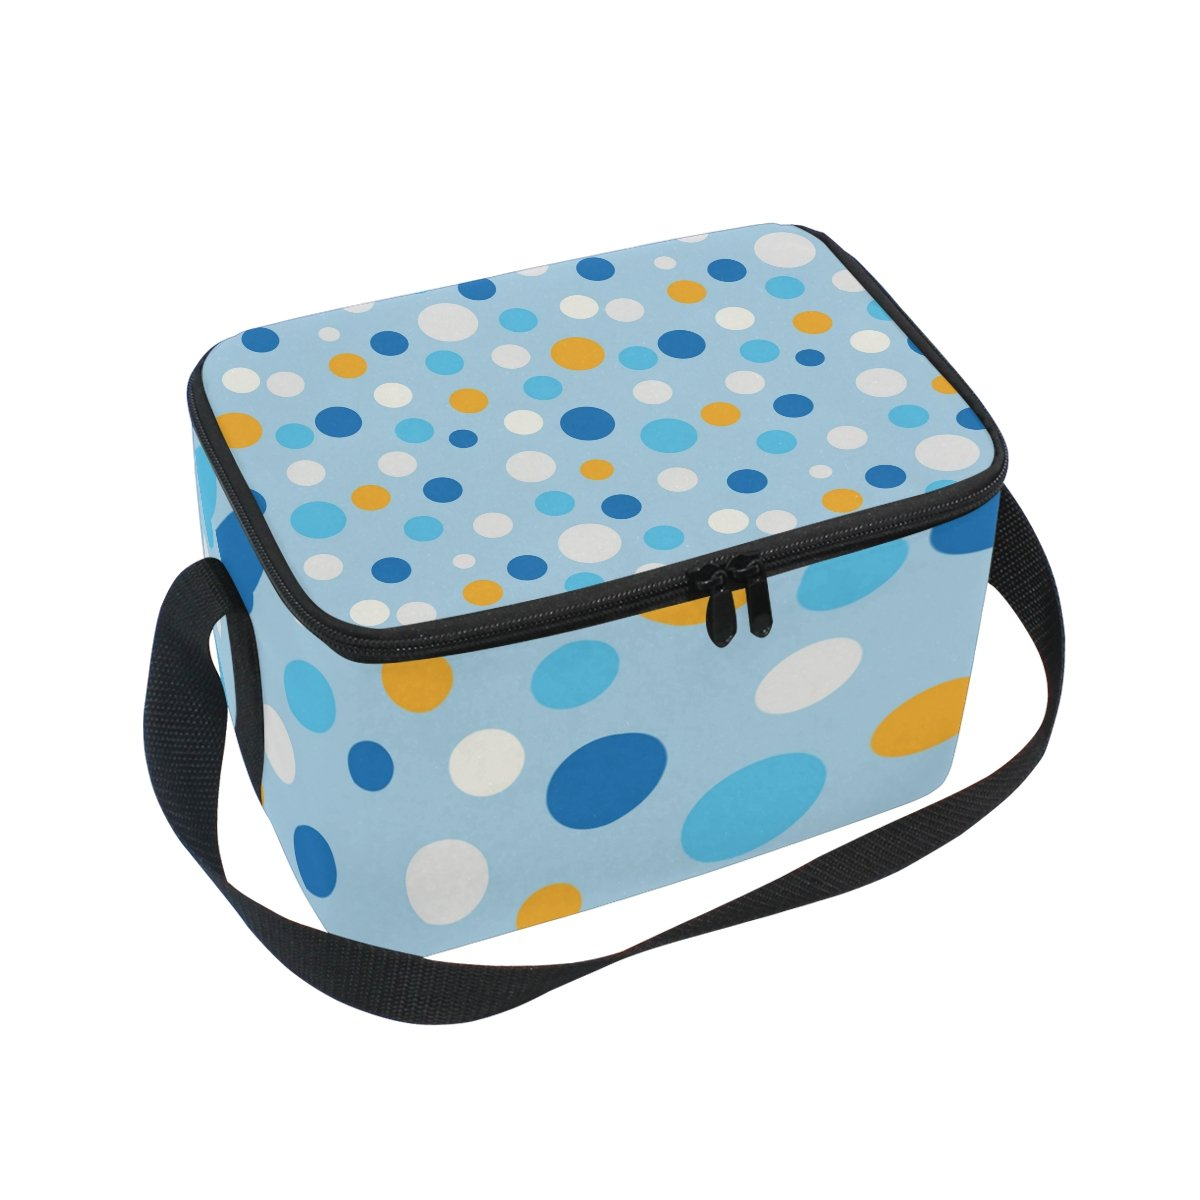 e4d89a8e68b1 Amazon.com: Lunch Bag Colorful Dot Square Tote Bag Picnic Travel ...